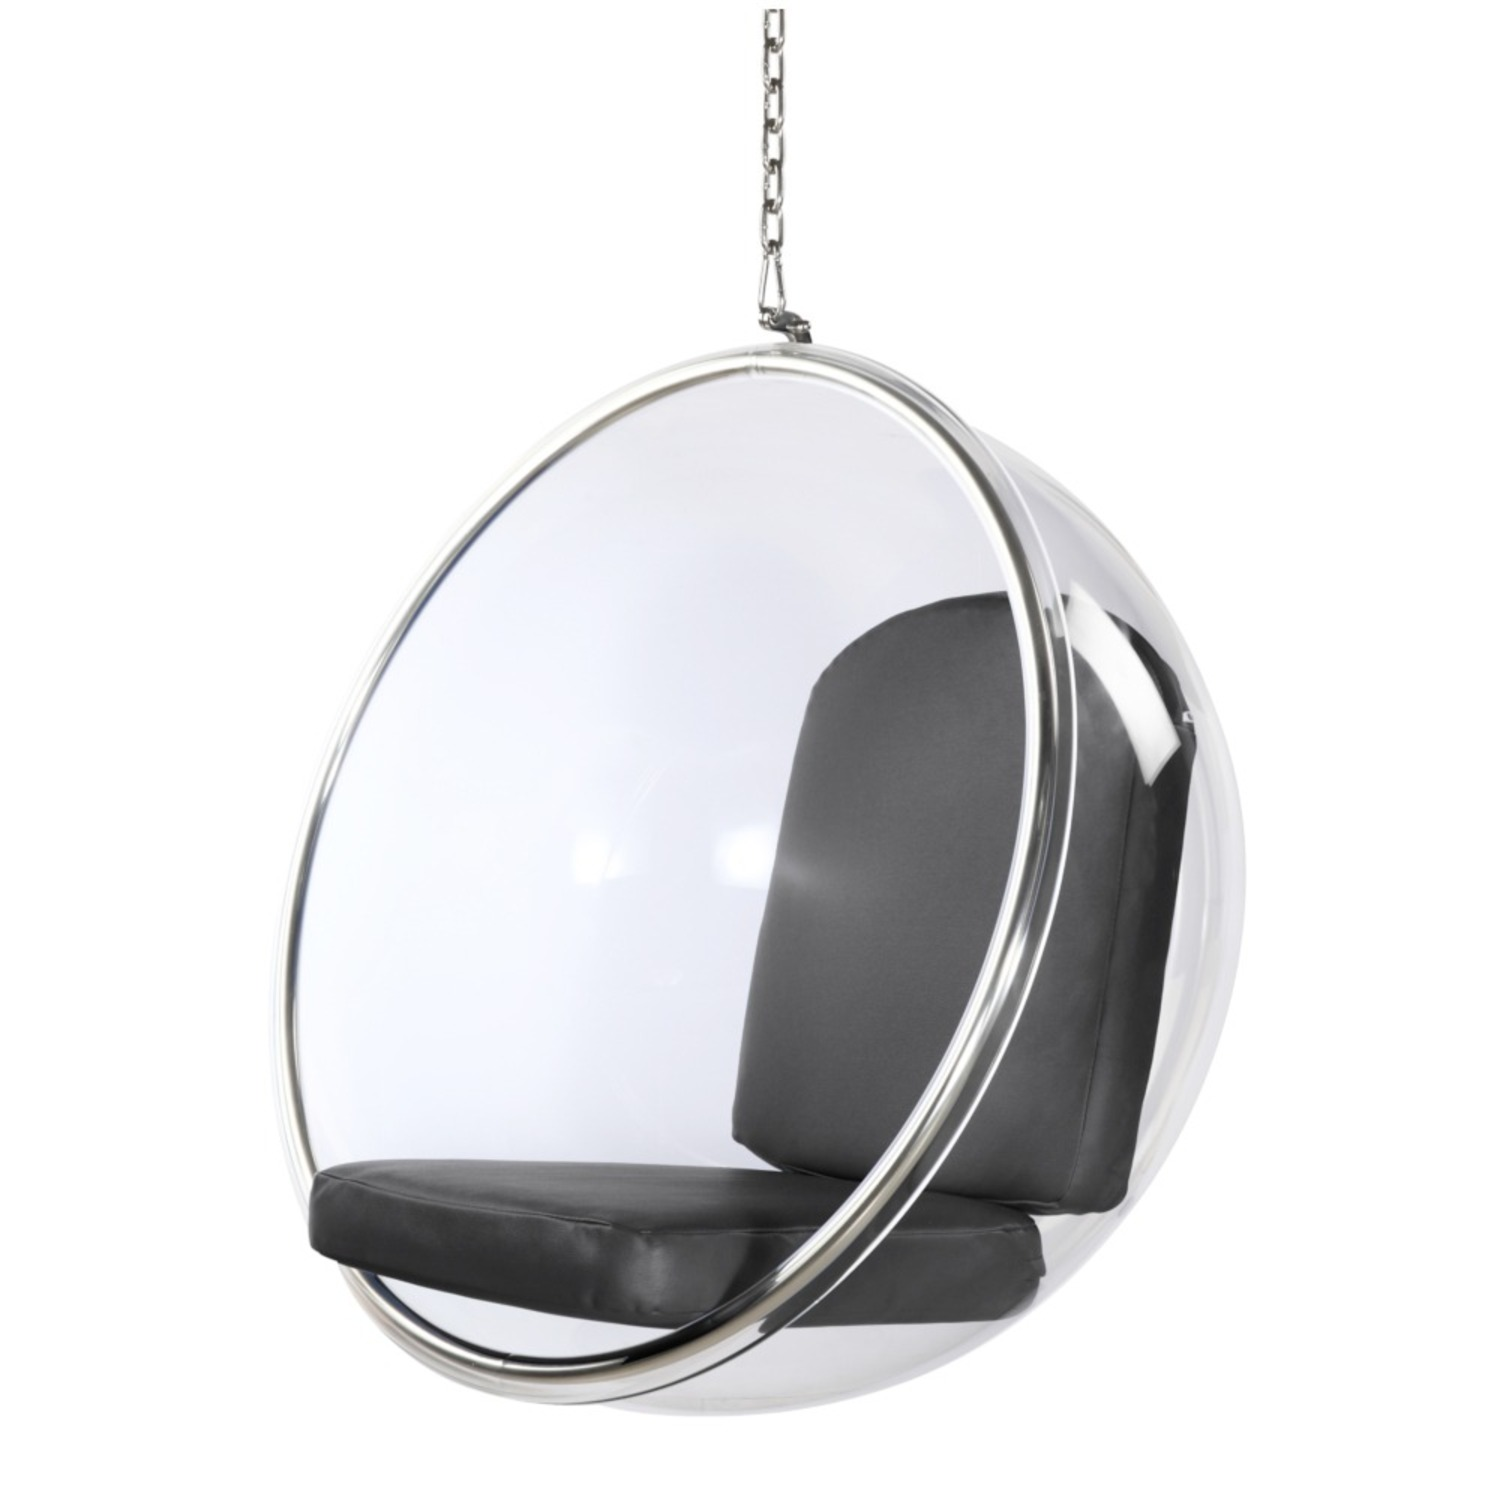 Hanging Chair In Clear Acrylic & Gray PU Leather - image-4